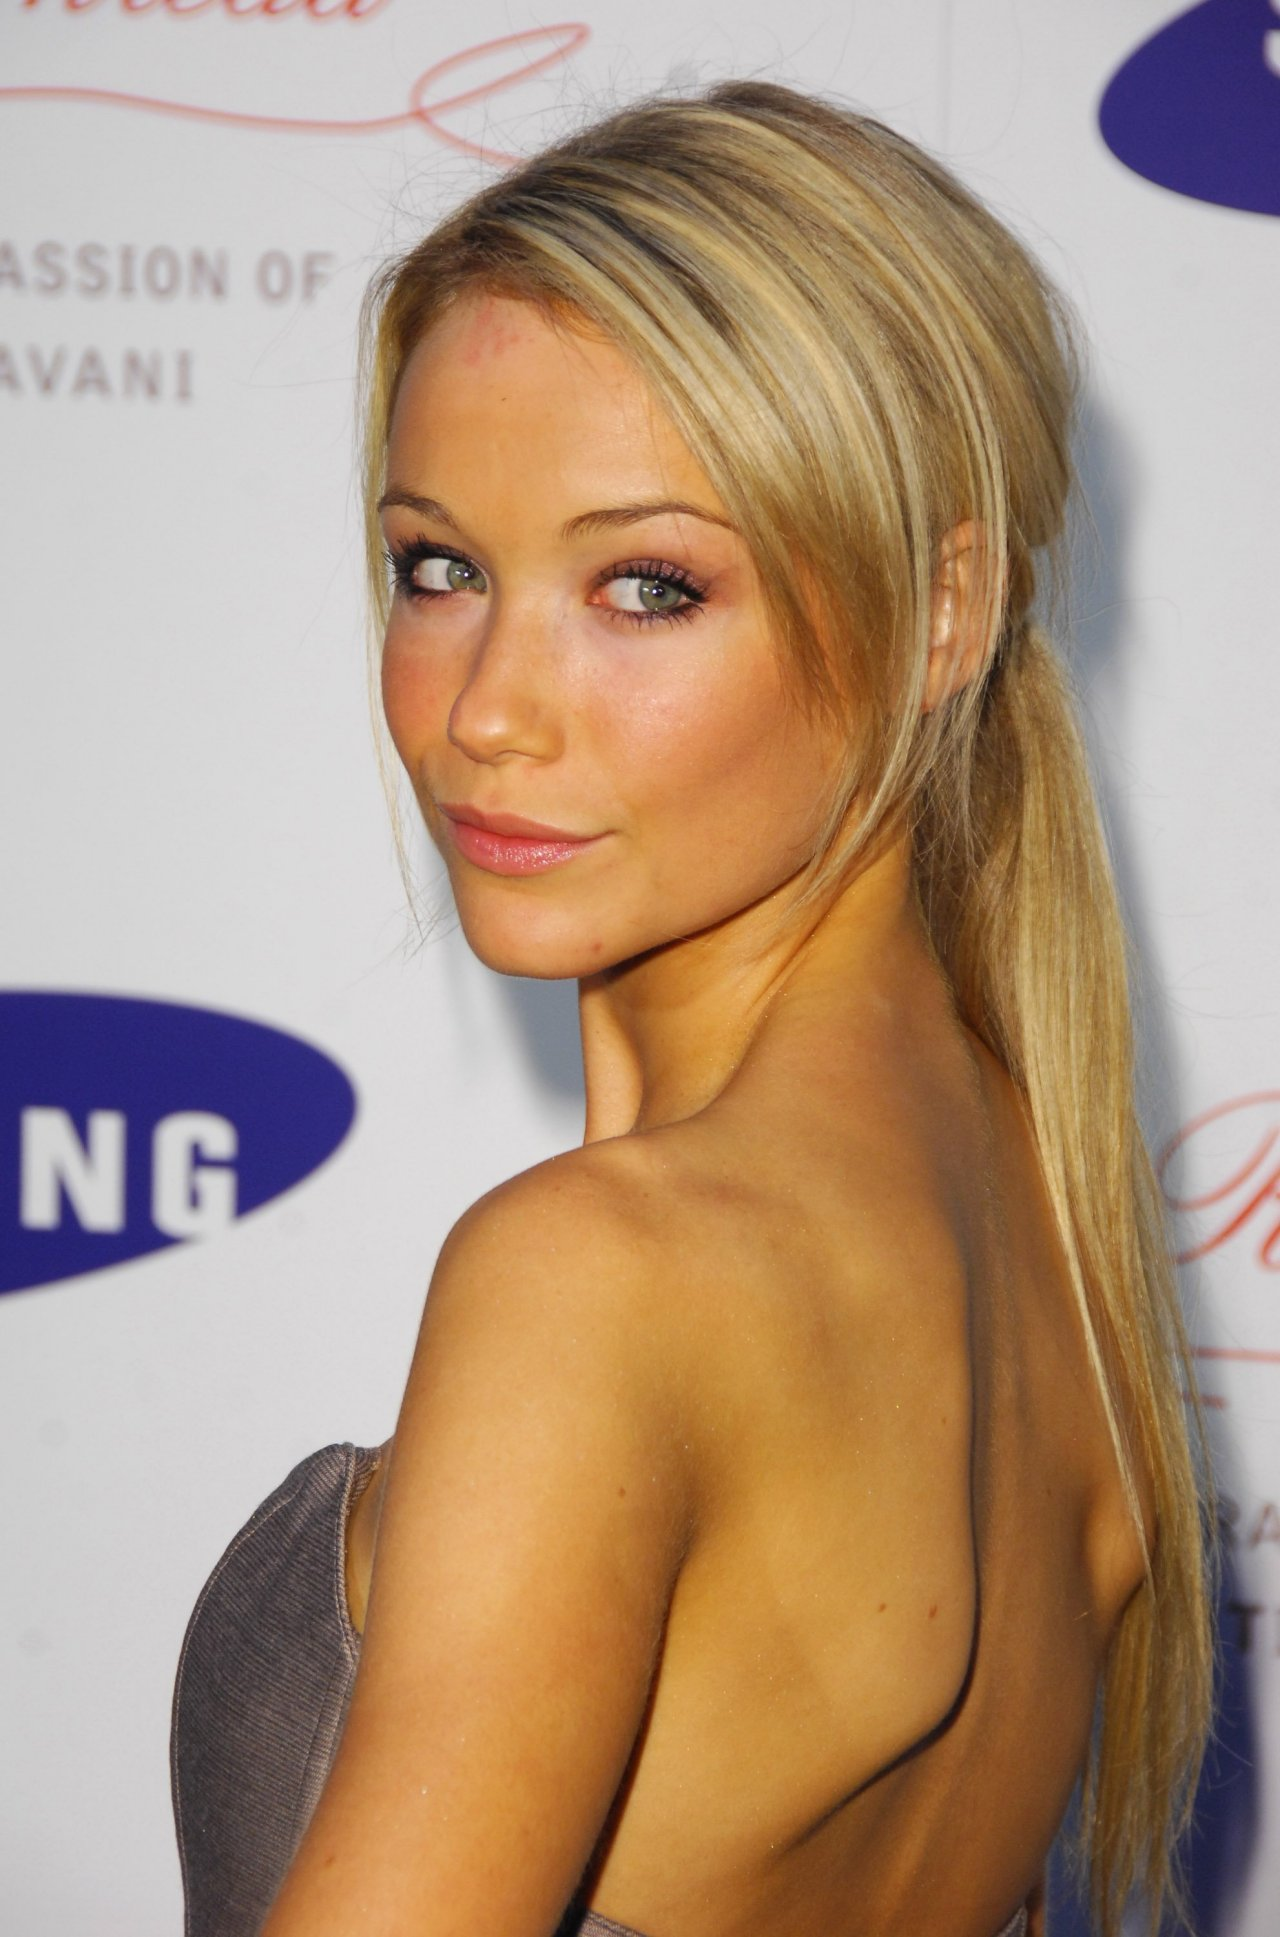 Katrina Bowden HQ wallpapers